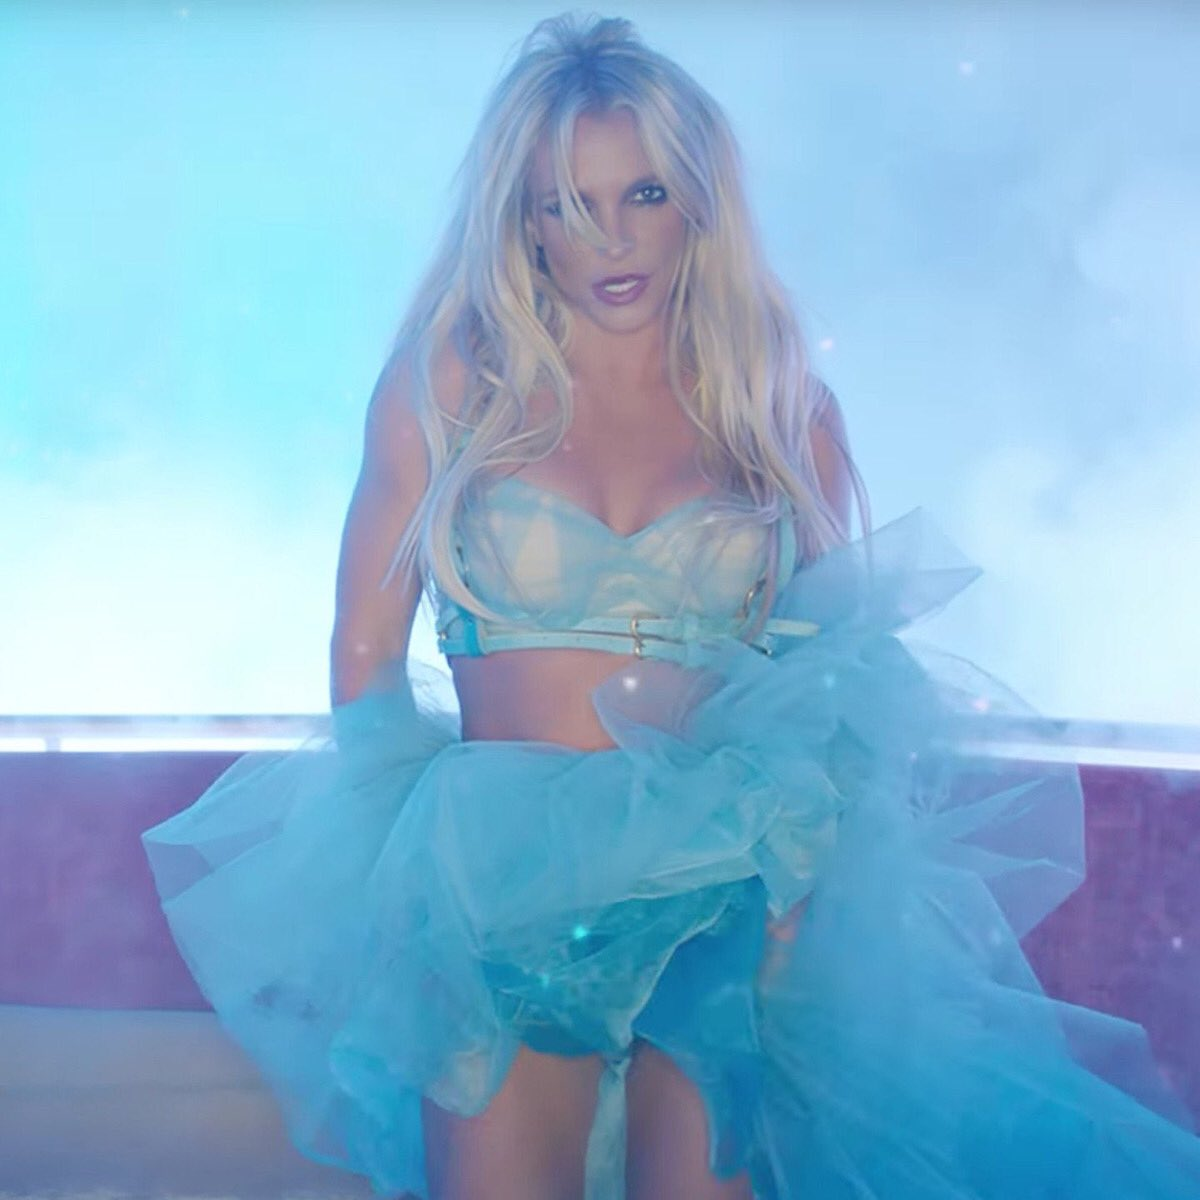 Can't believe it's been a year since the #SlumberParty video was released! This was my favorite scene and outfit!!